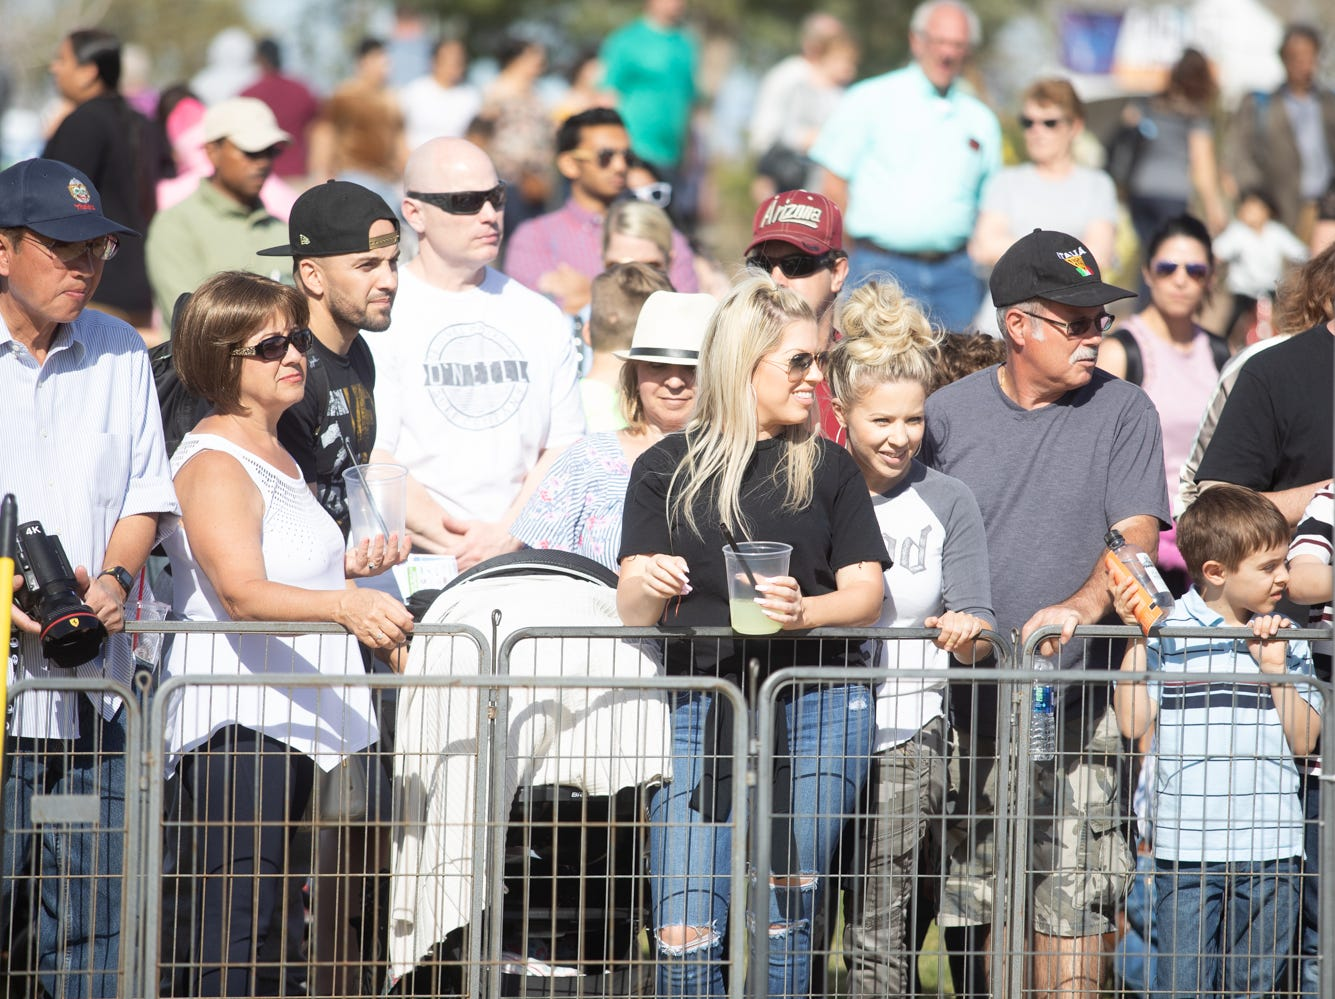 People were very excited about the dog races at the Chandler Ostrich Festival on Sunday, March. 10, 2019.